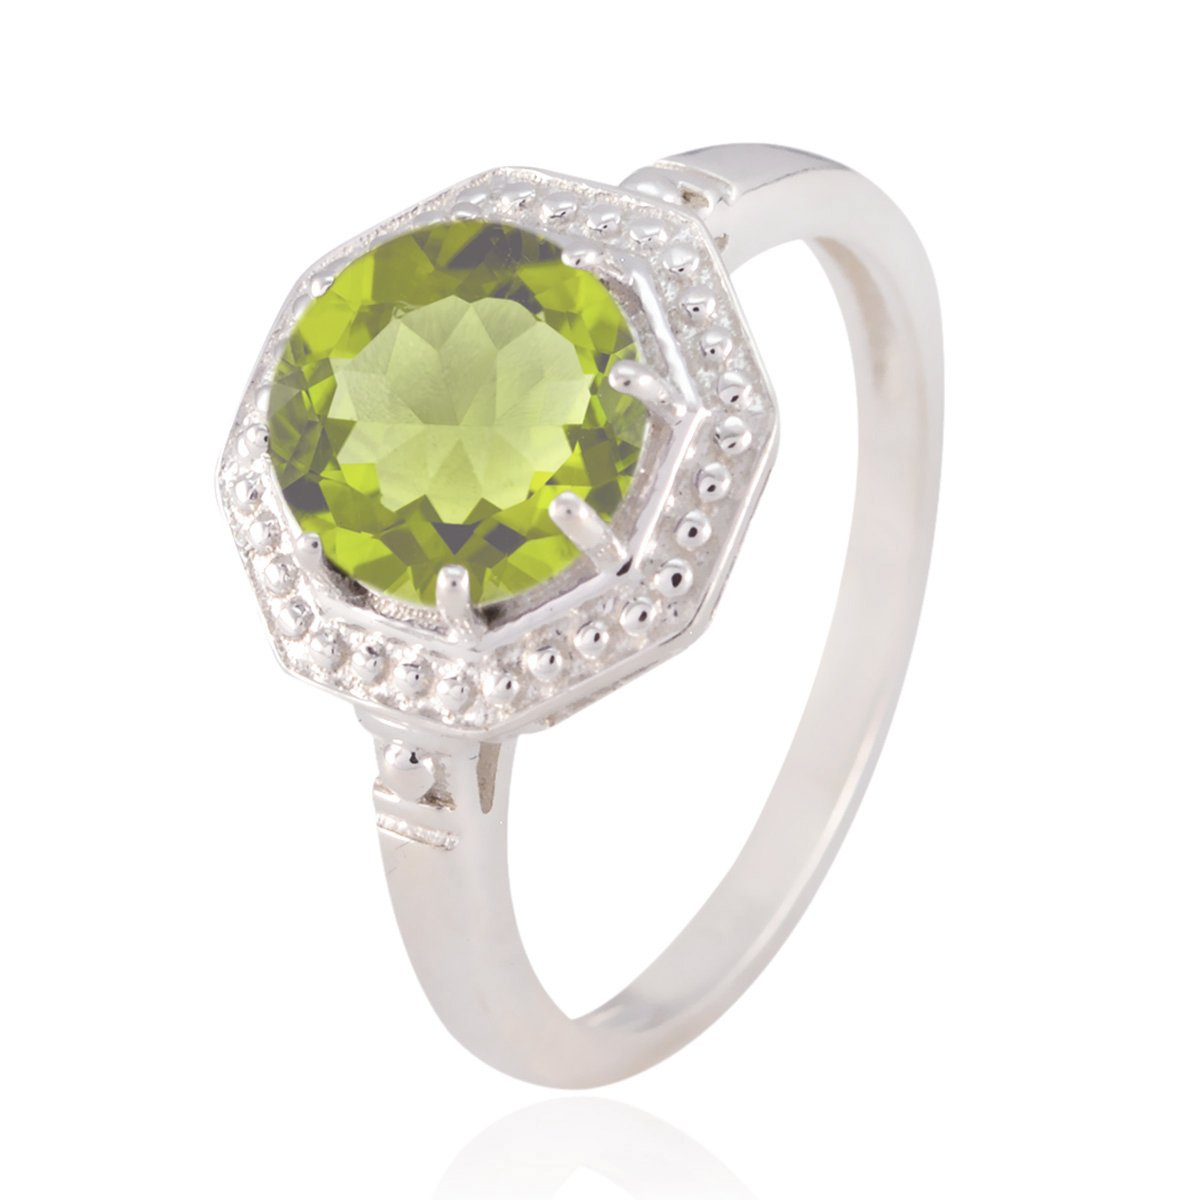 Handmade Jewelry Great Selling Shops Gift Birthstone Ring Good Gemstones Round Faceted Peridot Ring Solid Silver Green Peridot Good Gemstones Ring